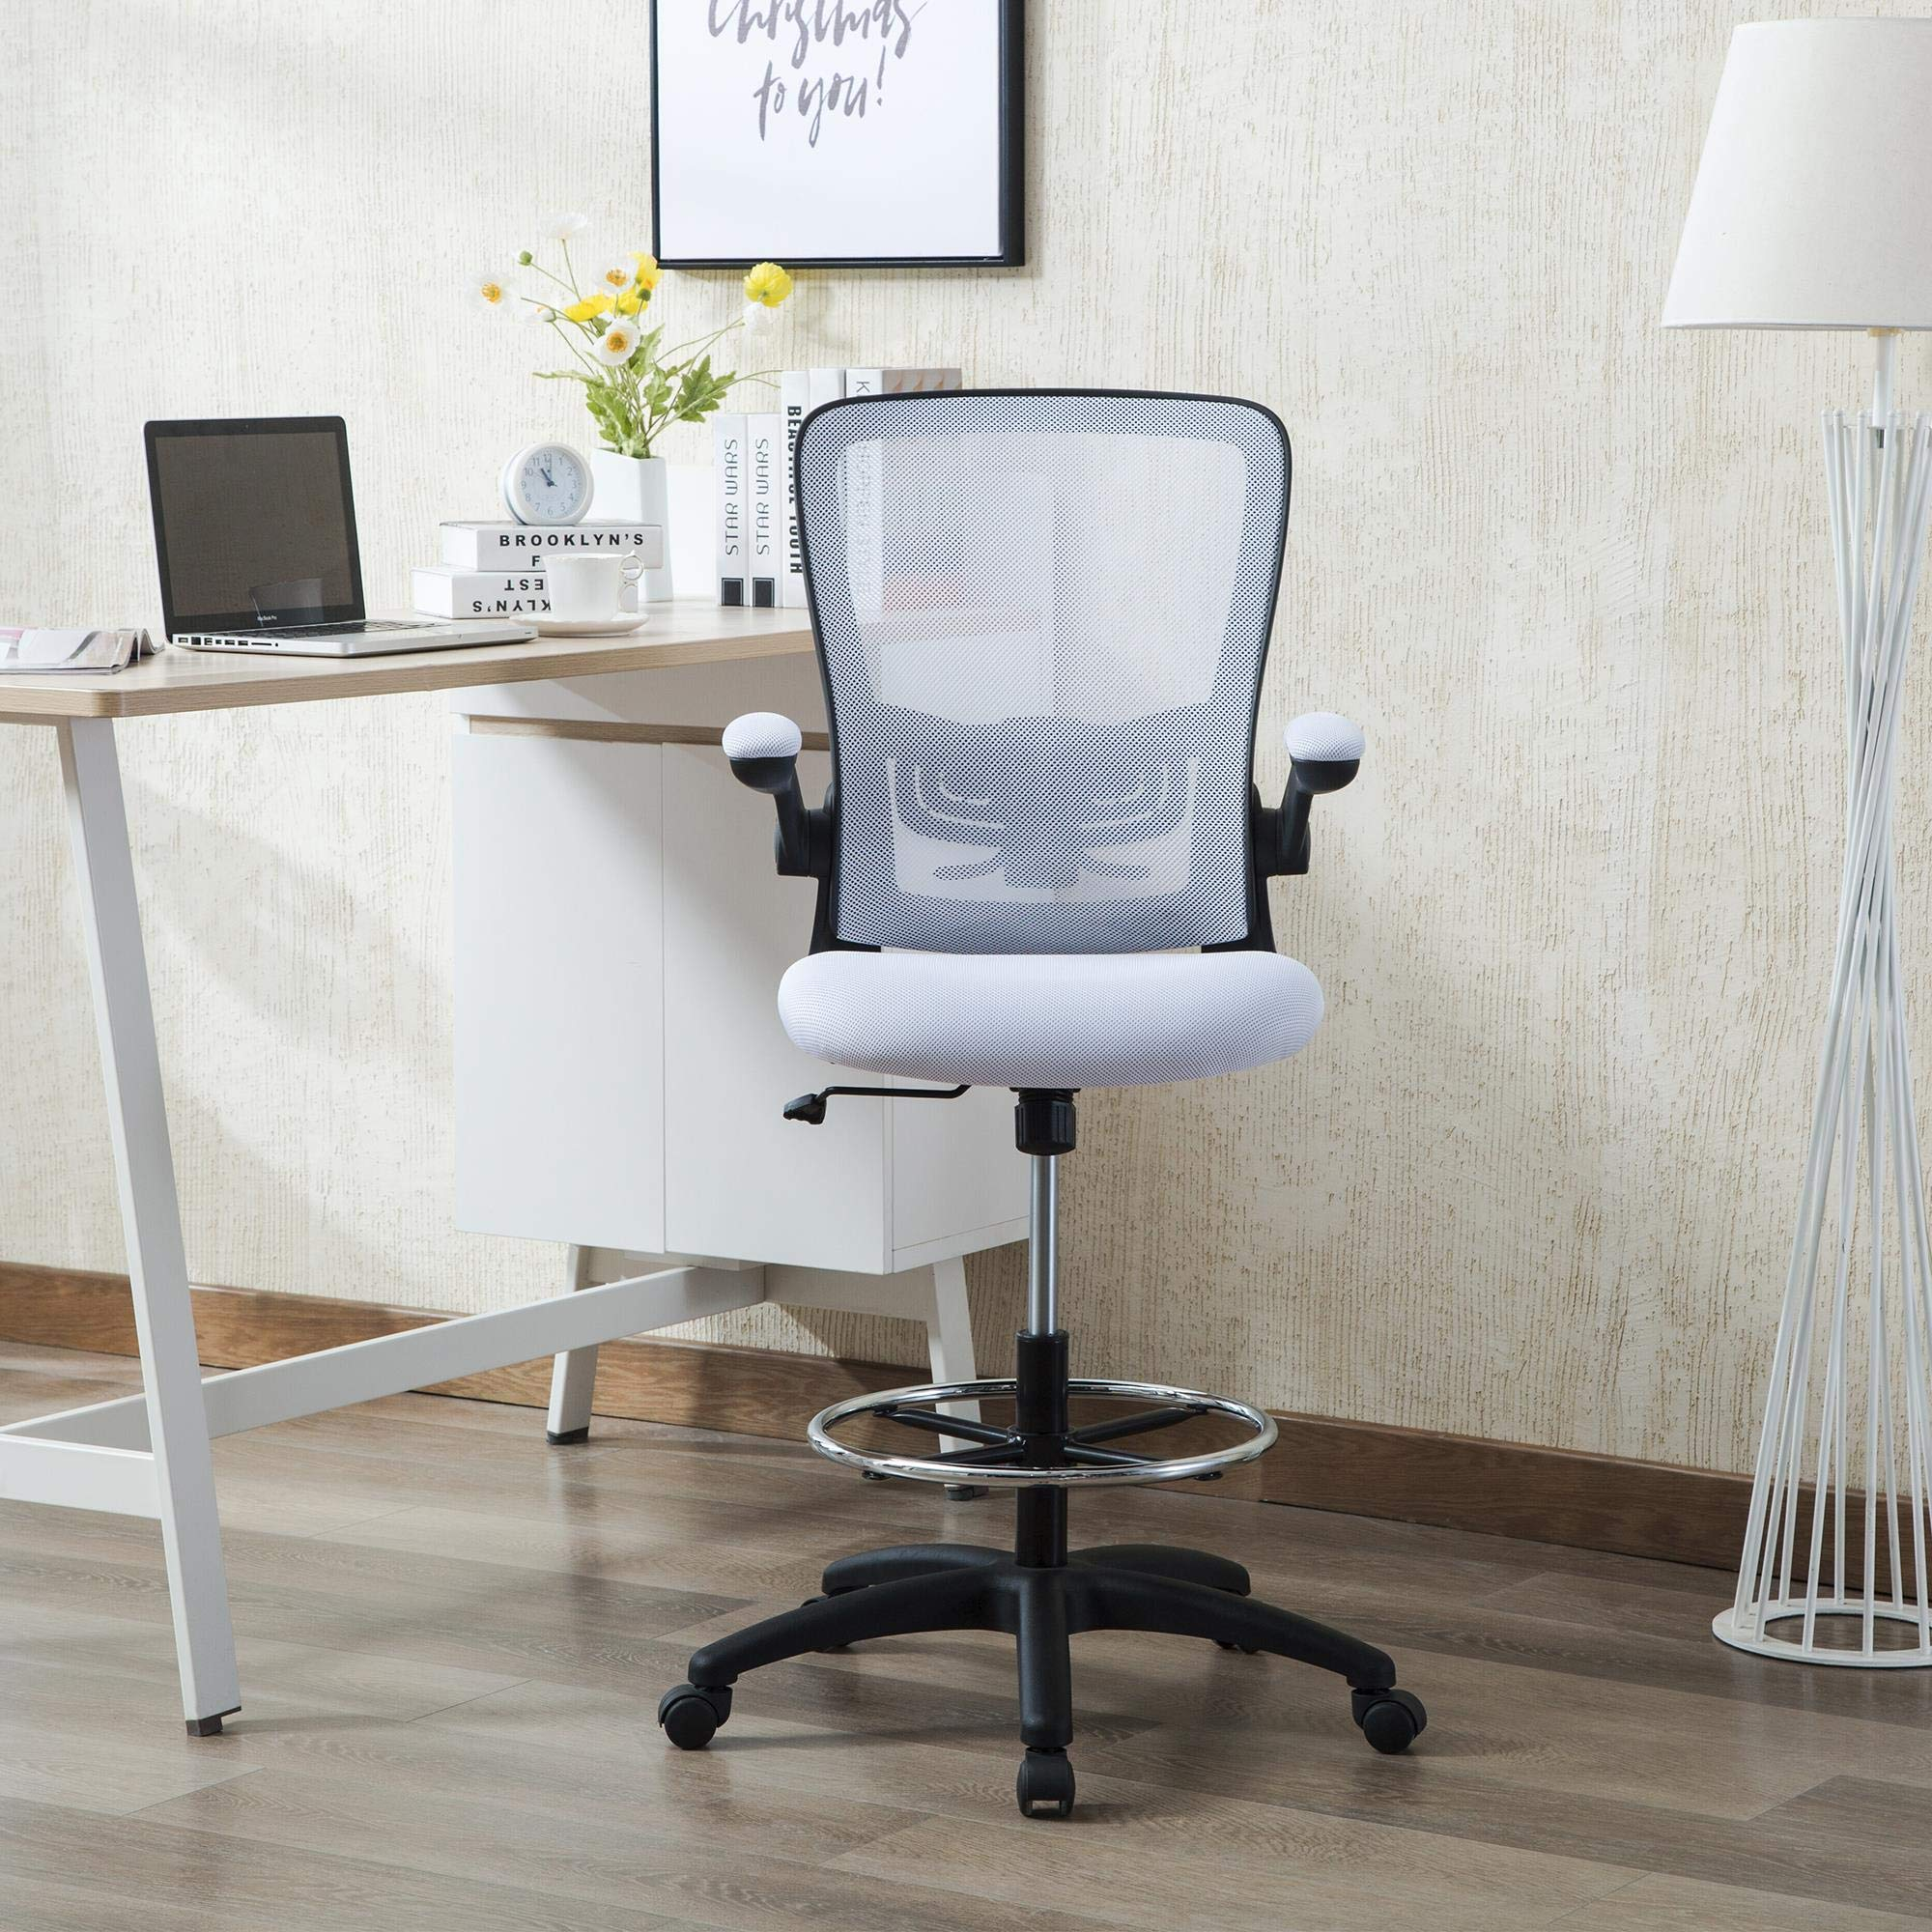 Naomi Home Serena Mid-Back Mesh Adjustable Drafting Chair White/Black by Naomi Home